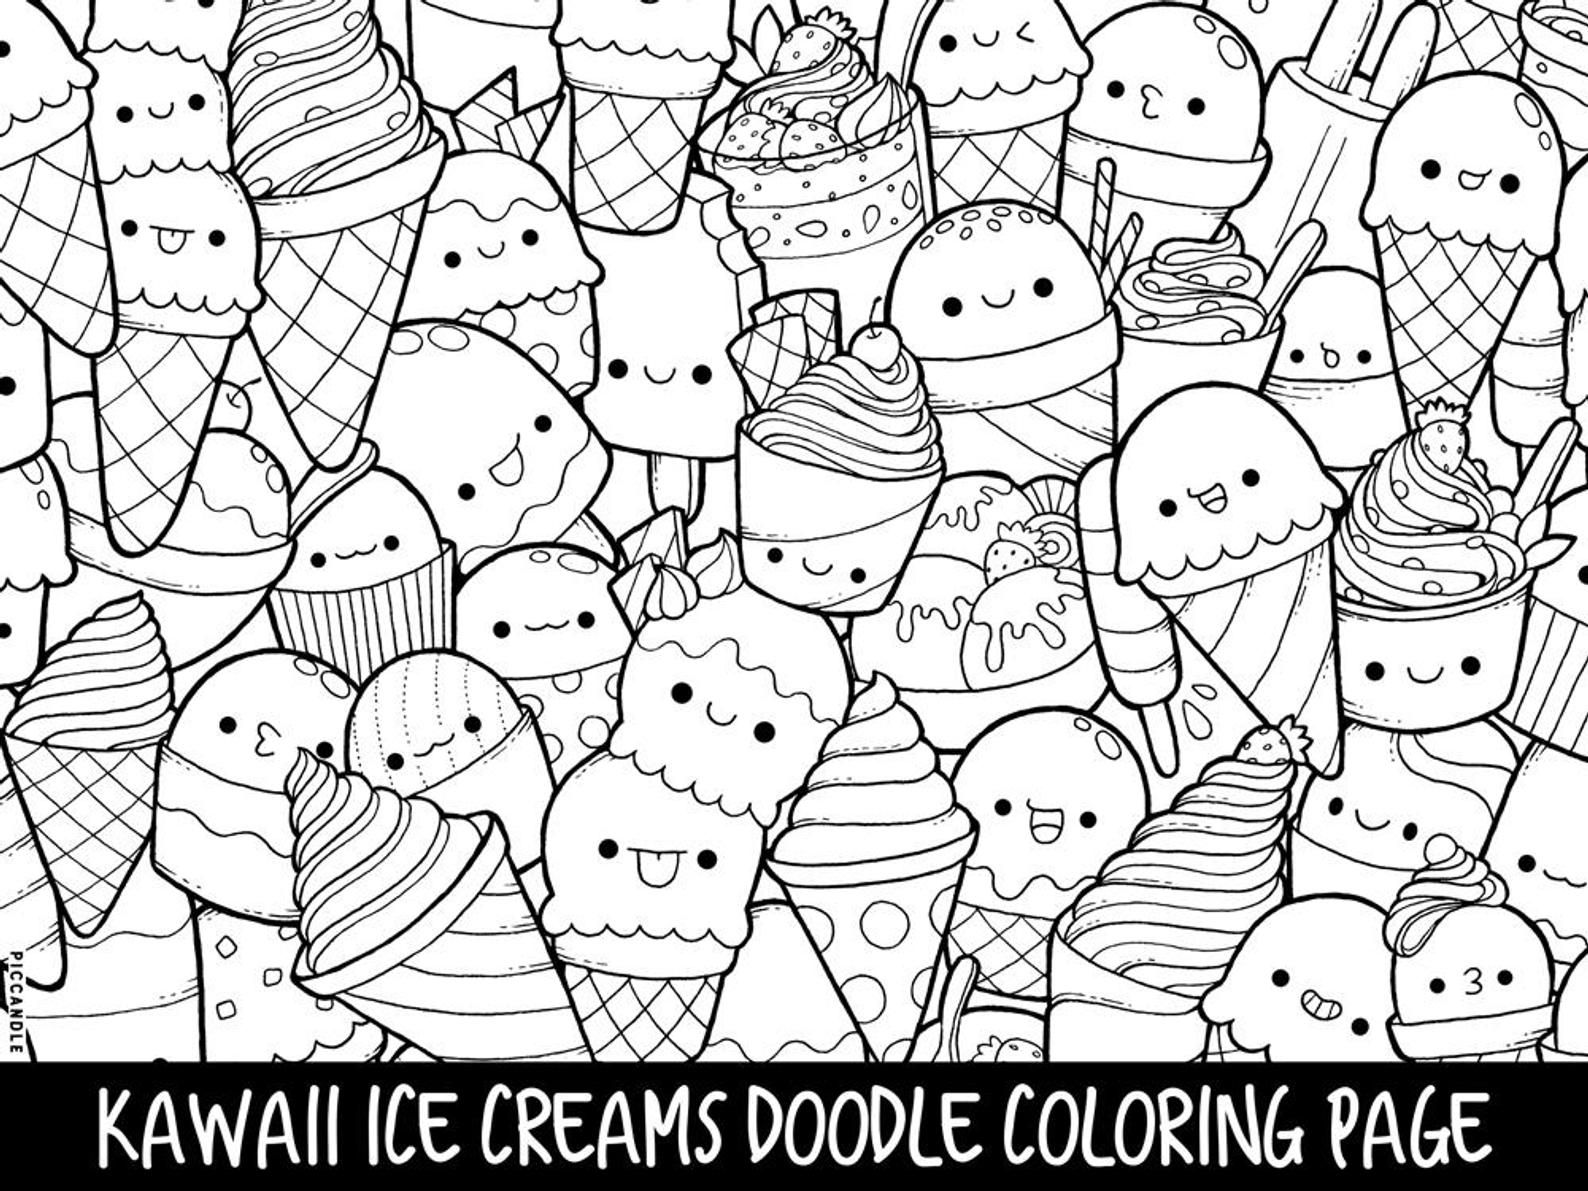 Ice Creams Doodle Coloring Page Printable Cute Kawaii Etsy Doodle Coloring Cute Coloring Pages Mermaid Coloring Pages